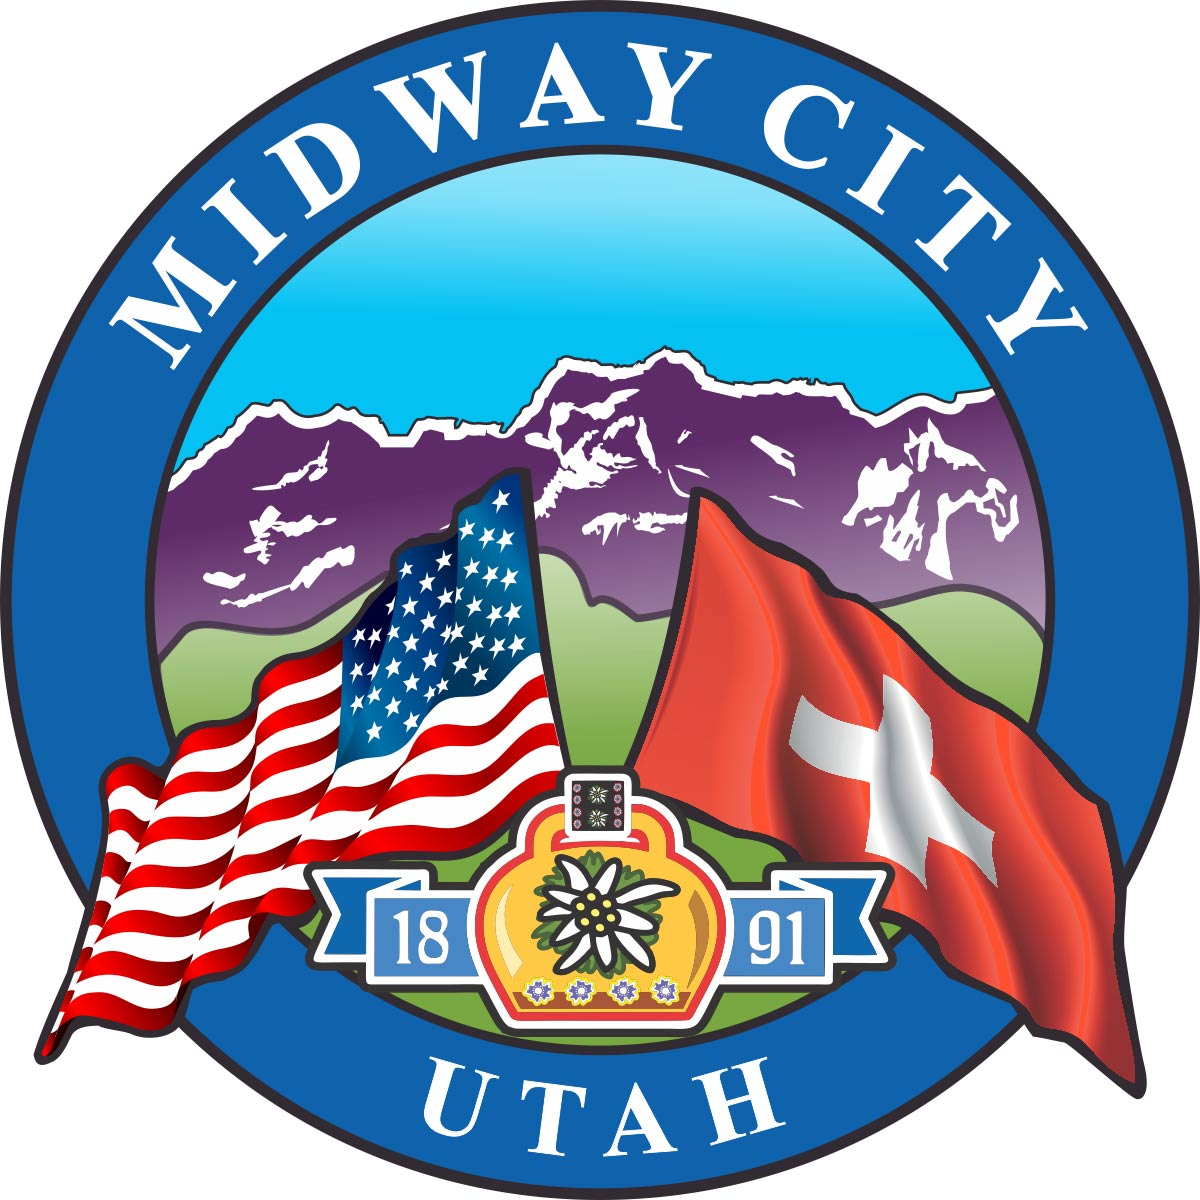 Midway City